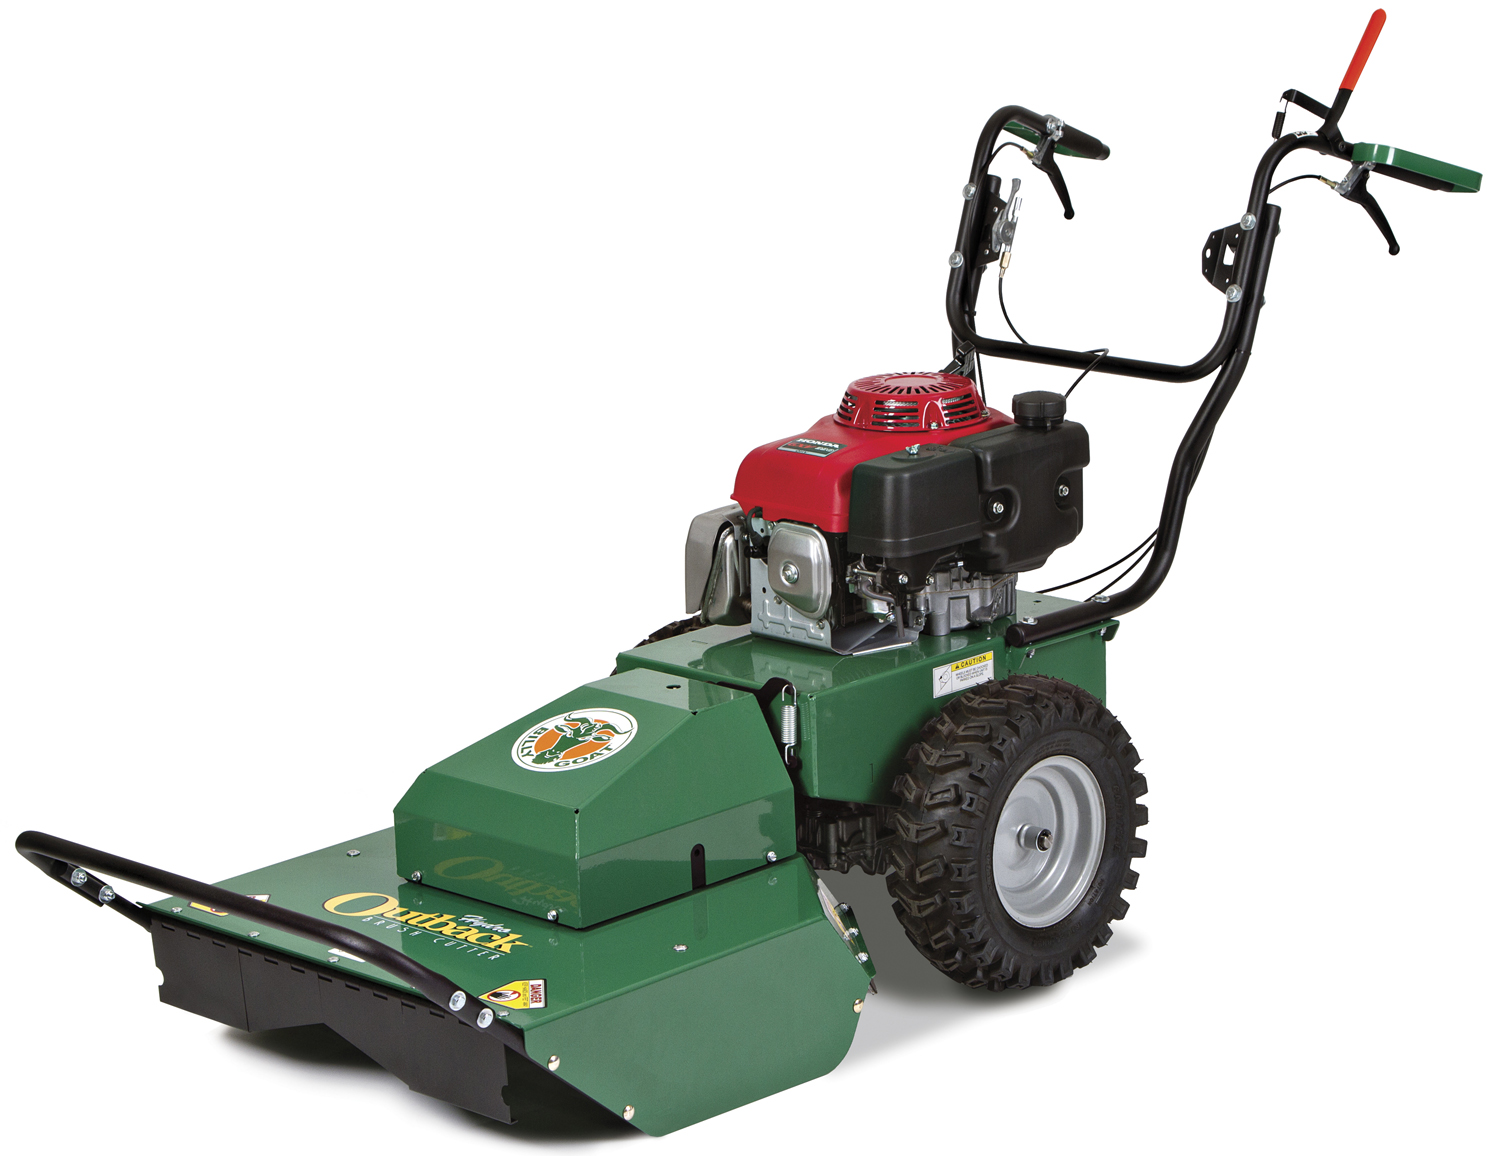 Billy Goat BC2600 Brush cutter